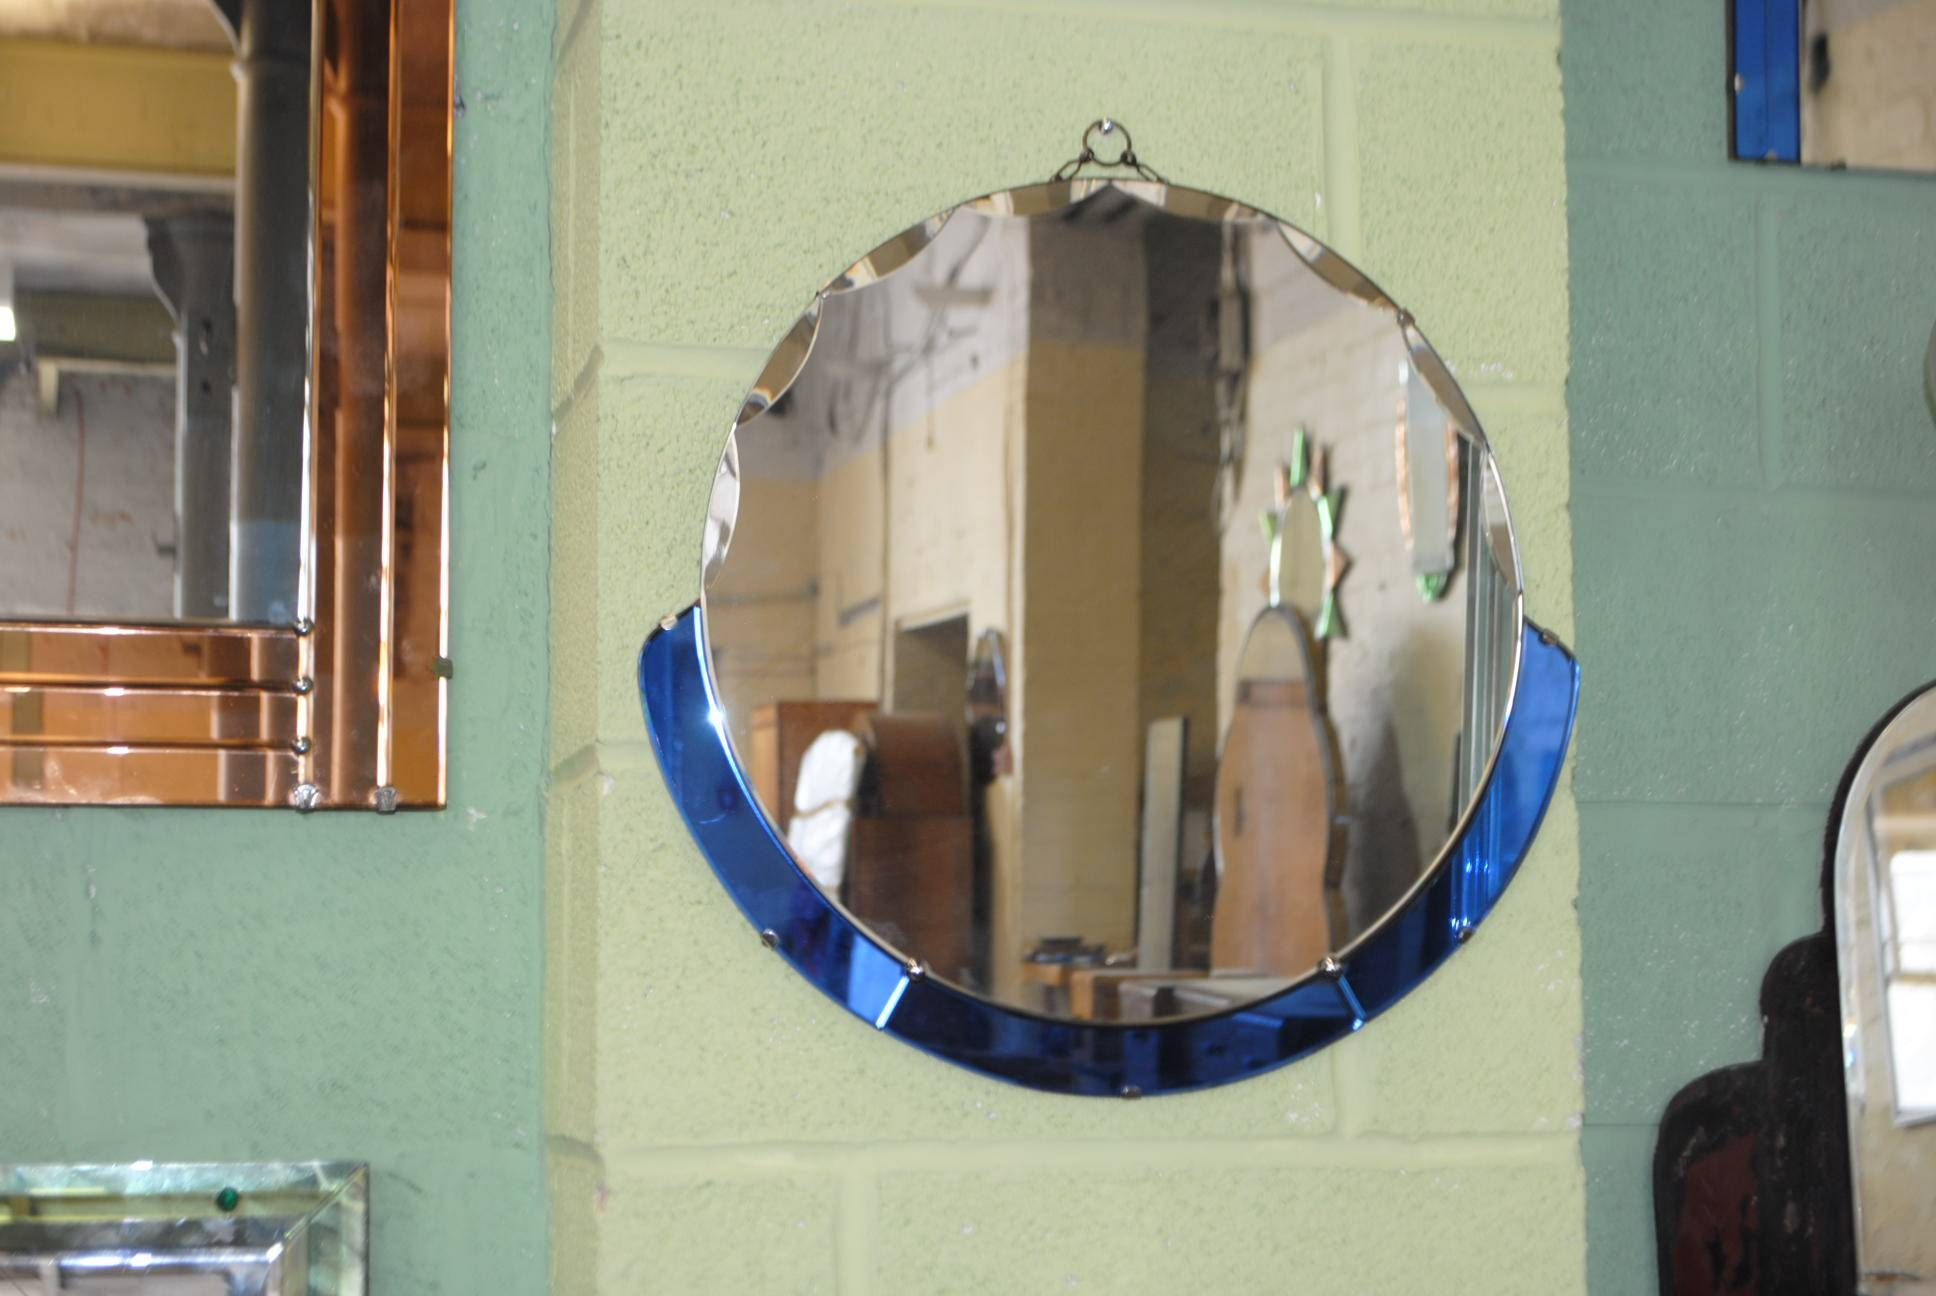 Original Circular And Blue Art Deco Mirror || Cloud 9, Art Deco with regard to Original Art Deco Mirrors (Image 19 of 25)